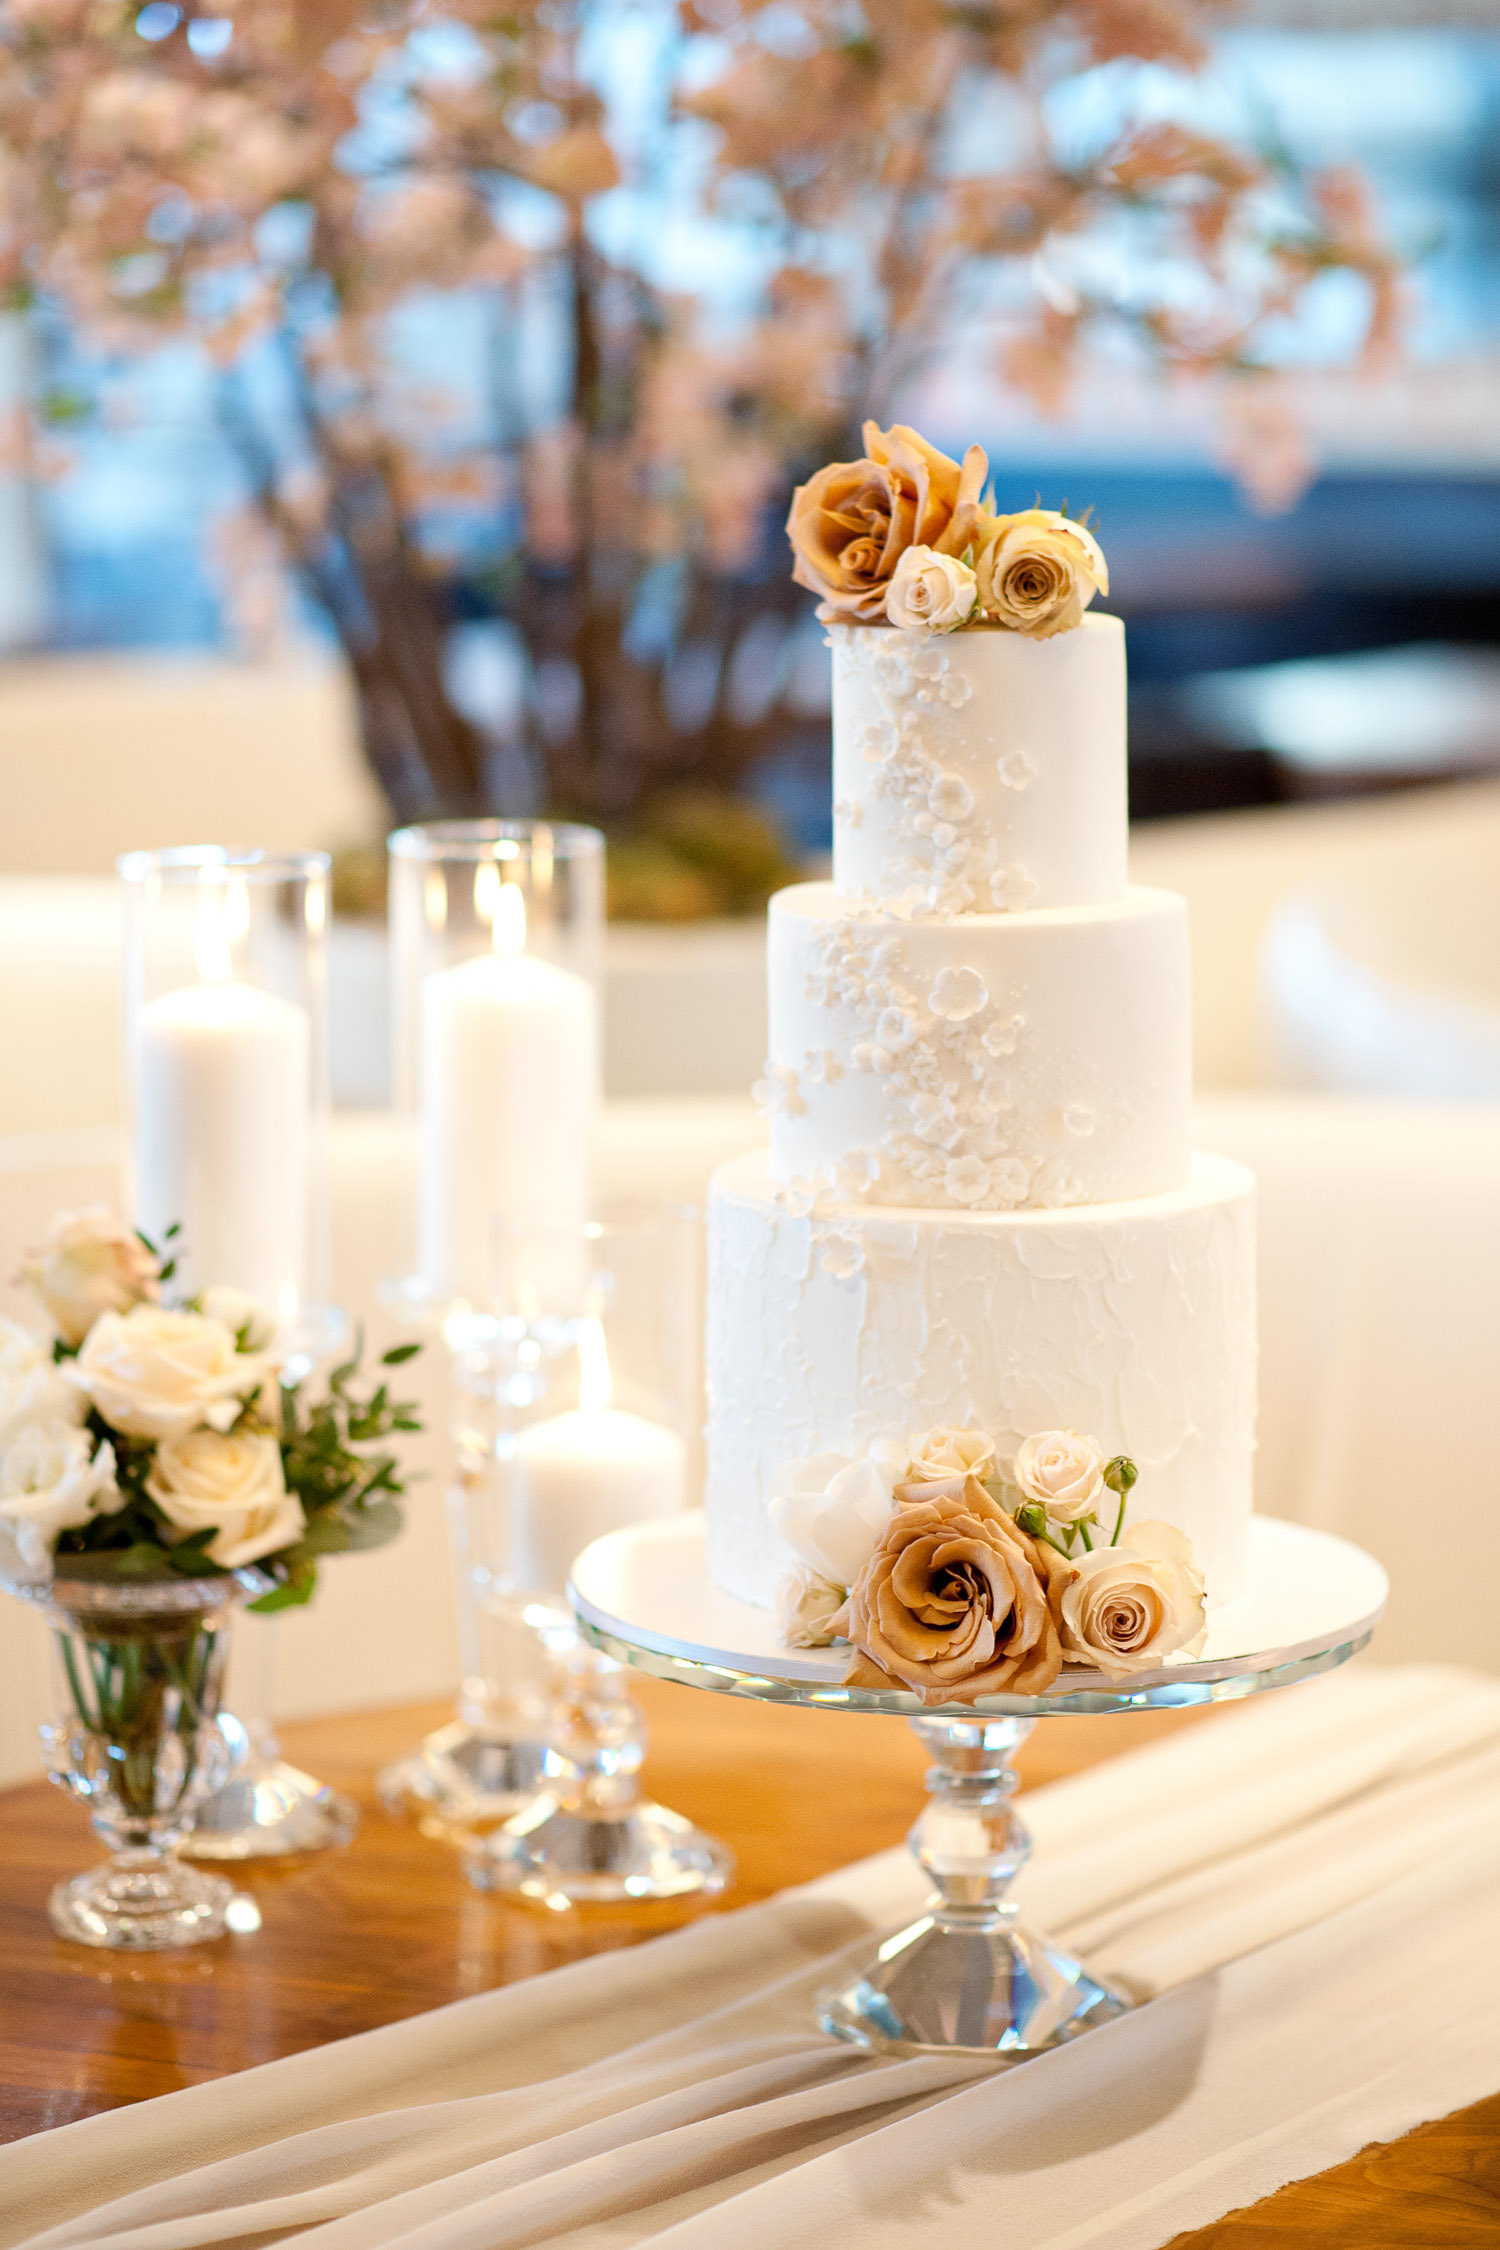 white wedding cake adorned with roses captured by Tara Whittaker Photography